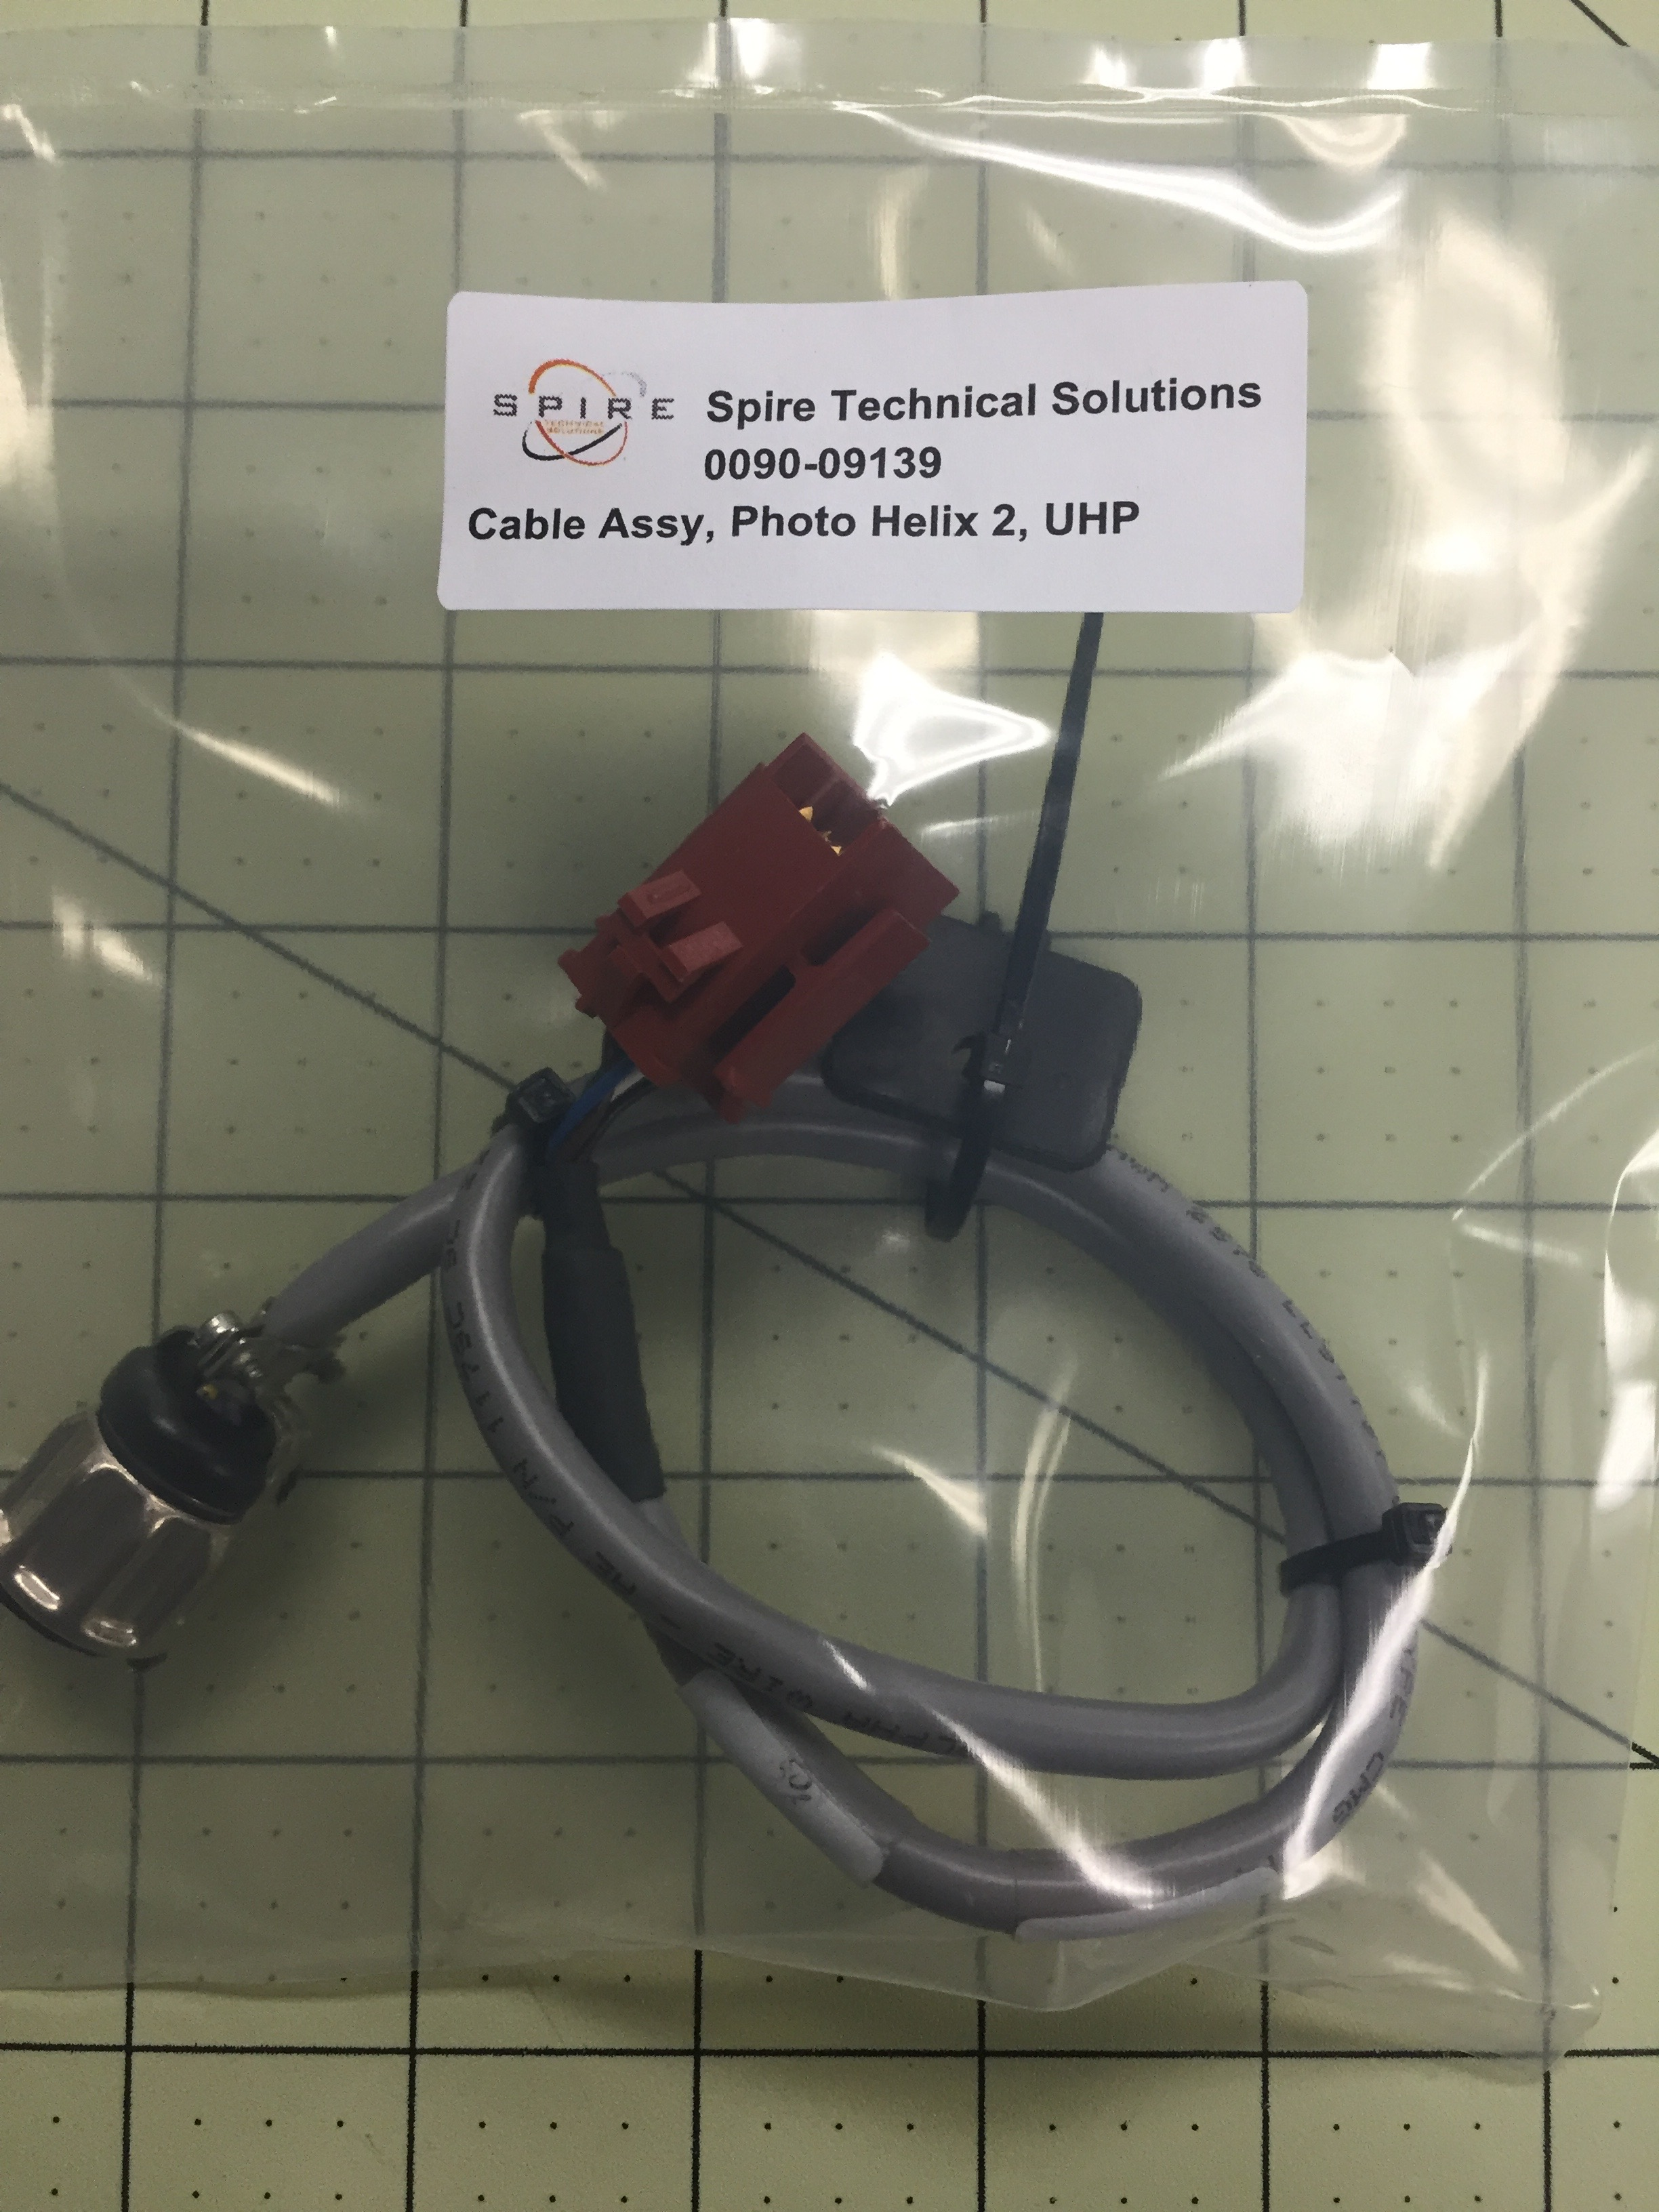 Cable Assy, Photo Helix 2, UHP